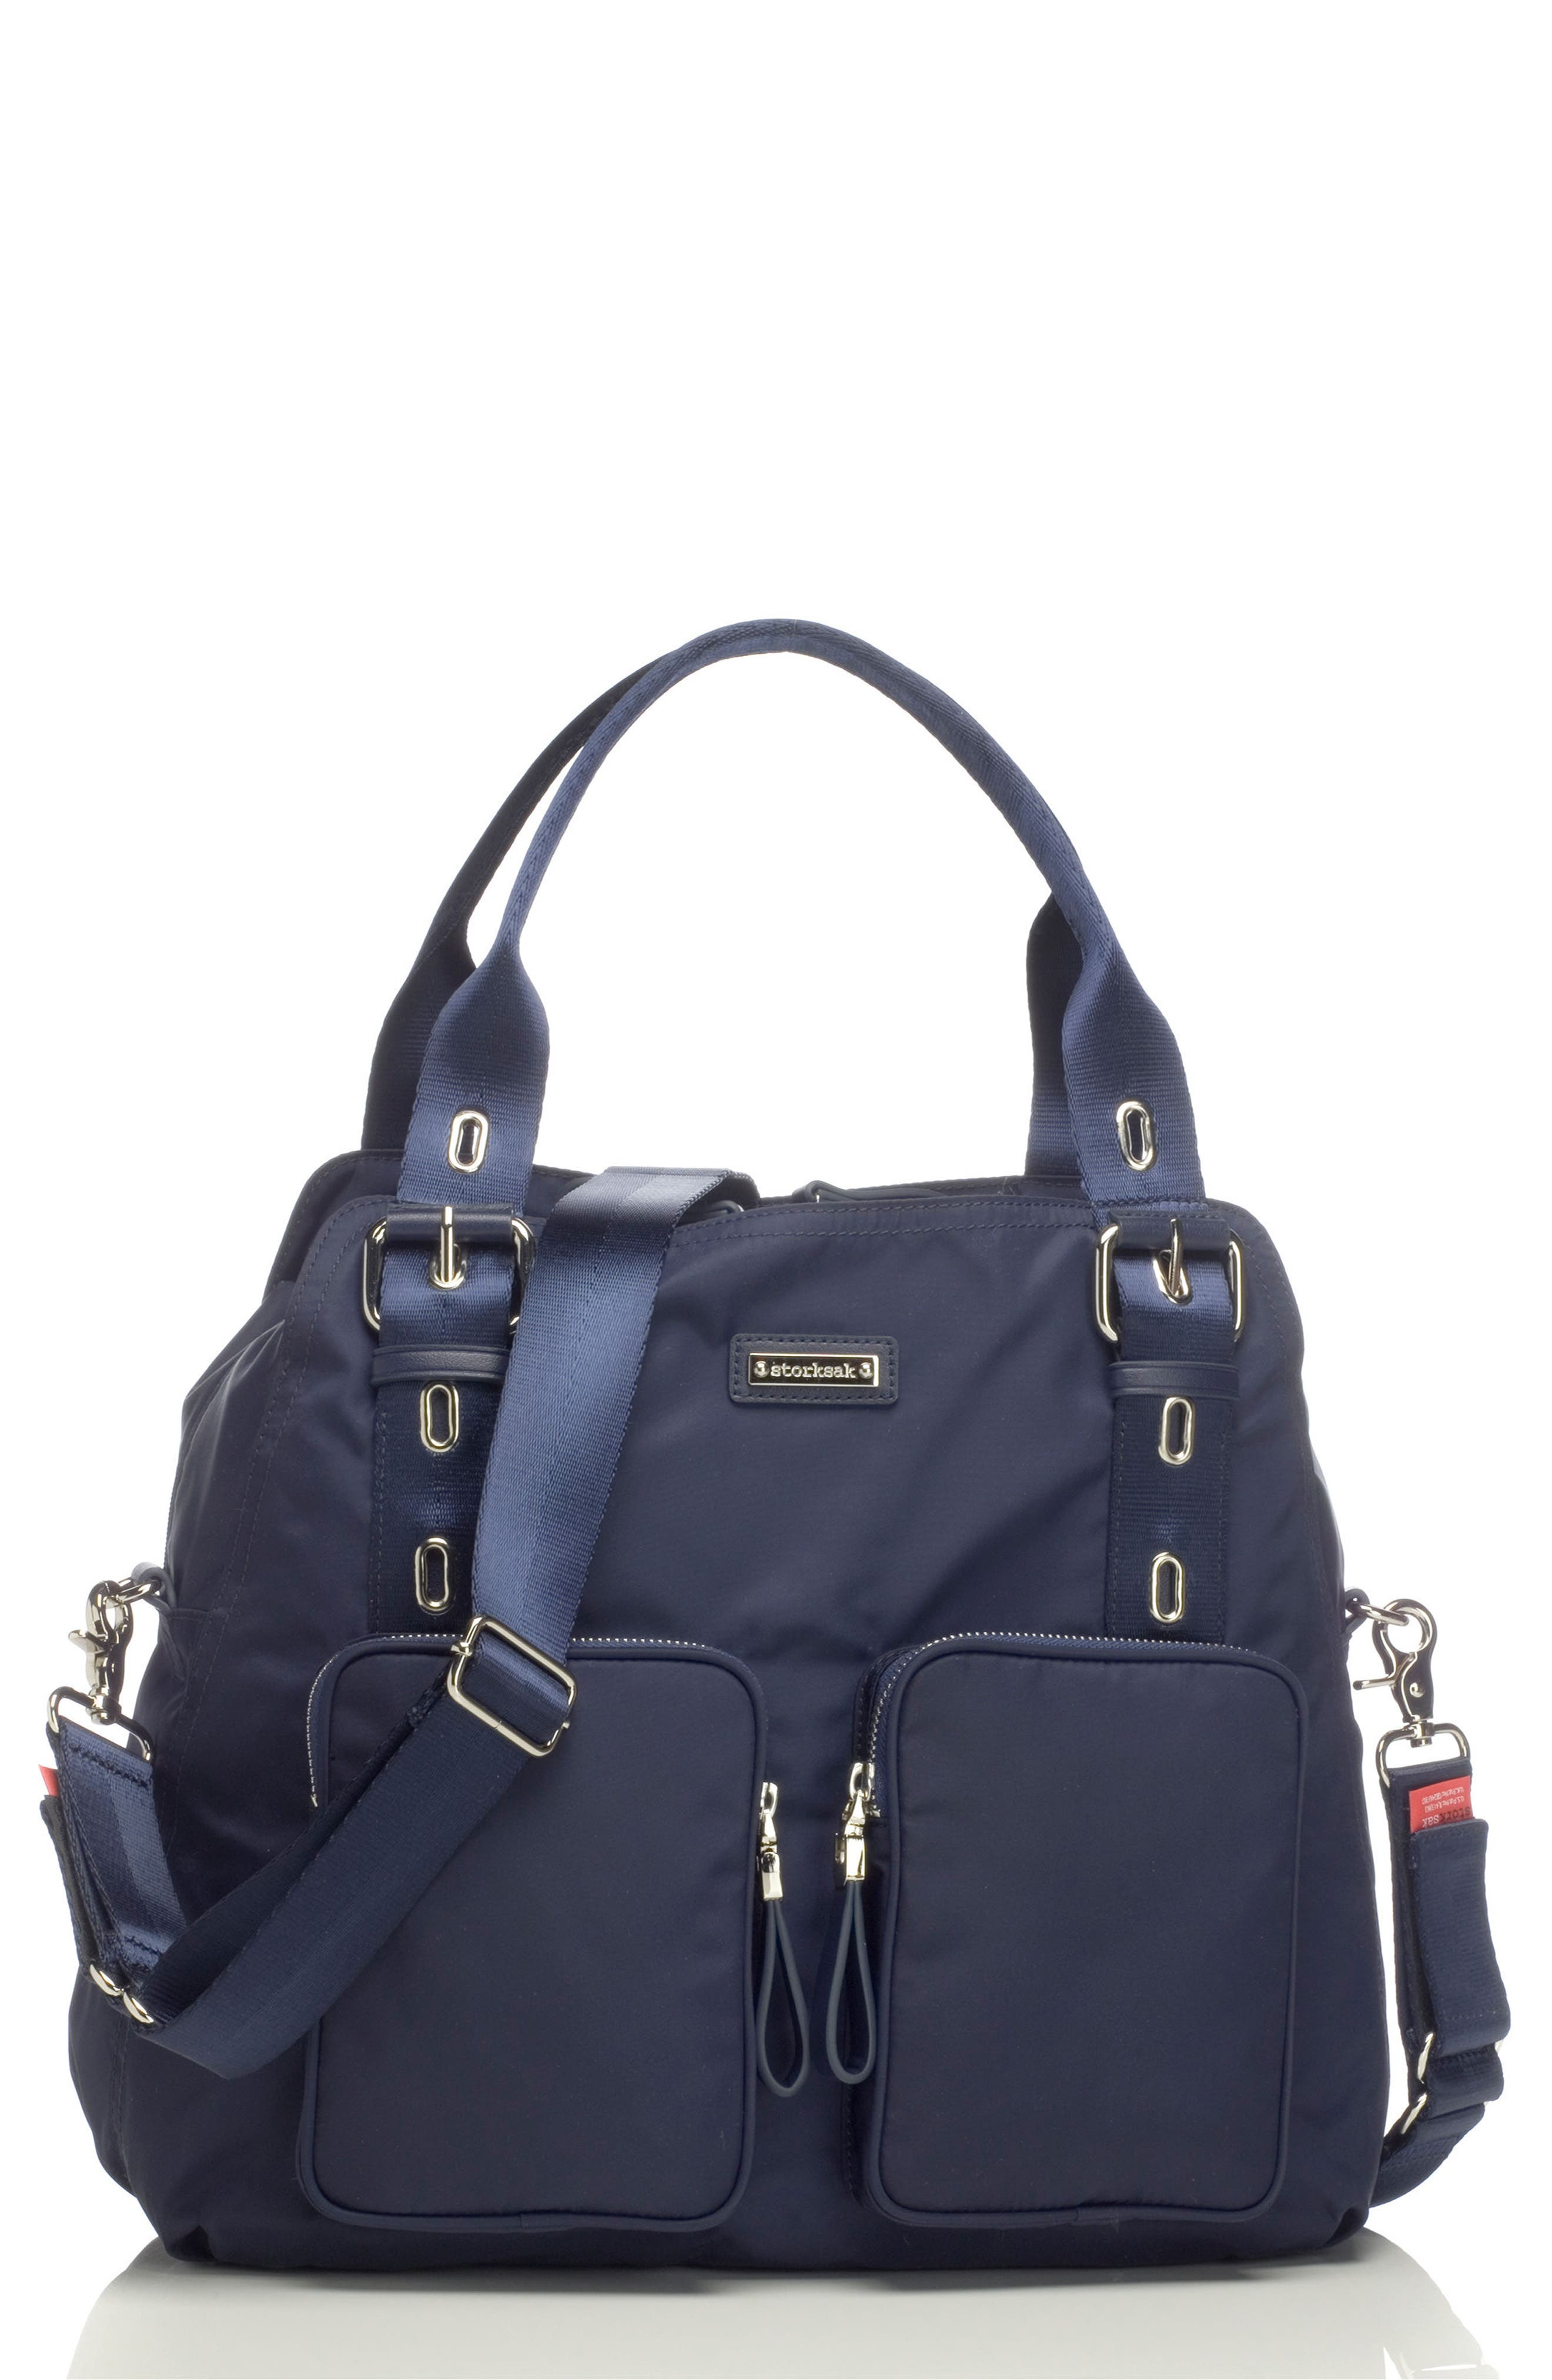 Storsak Alexa Diaper Bag